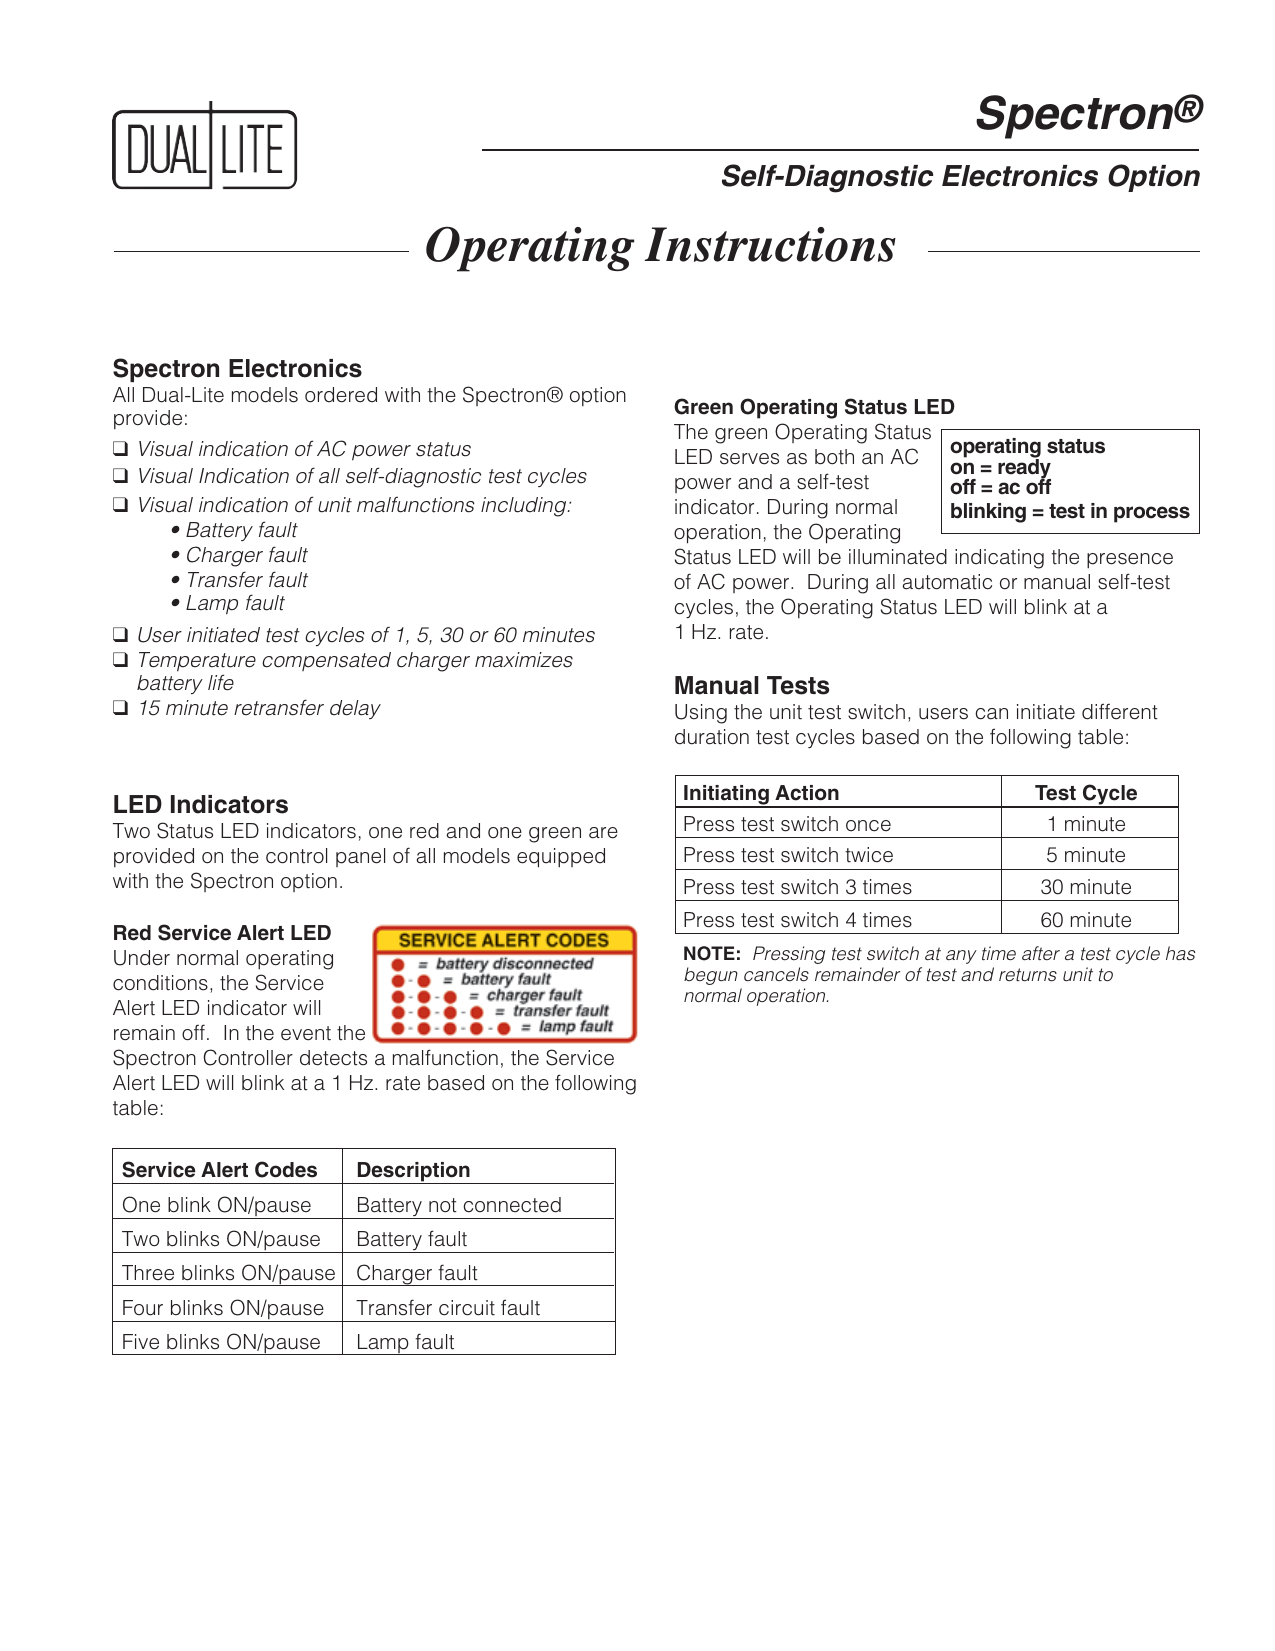 Operating Instructions Dual Lite Electronic Lamp Switch Including Time Delay Option